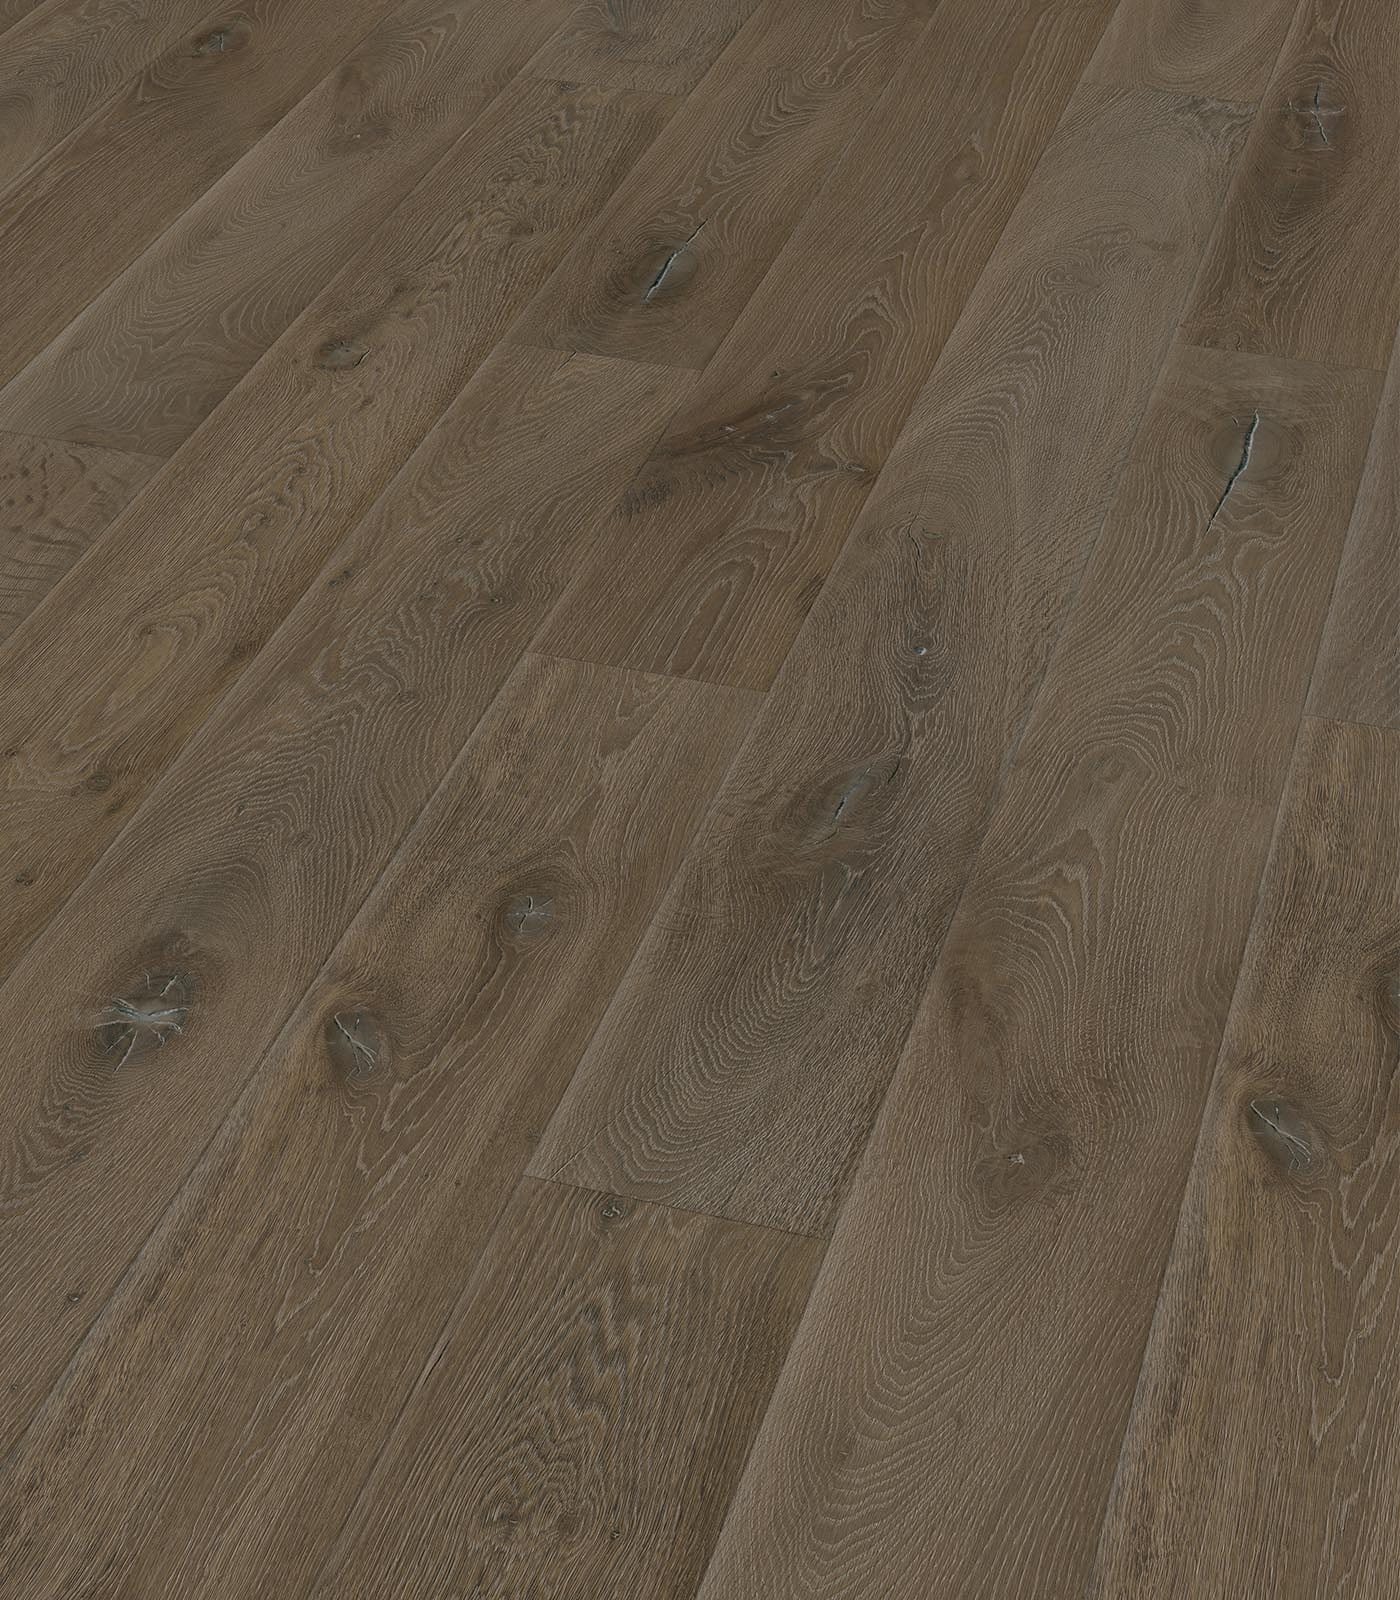 Tivoli-Heritage Collection-European Oak floors-angle